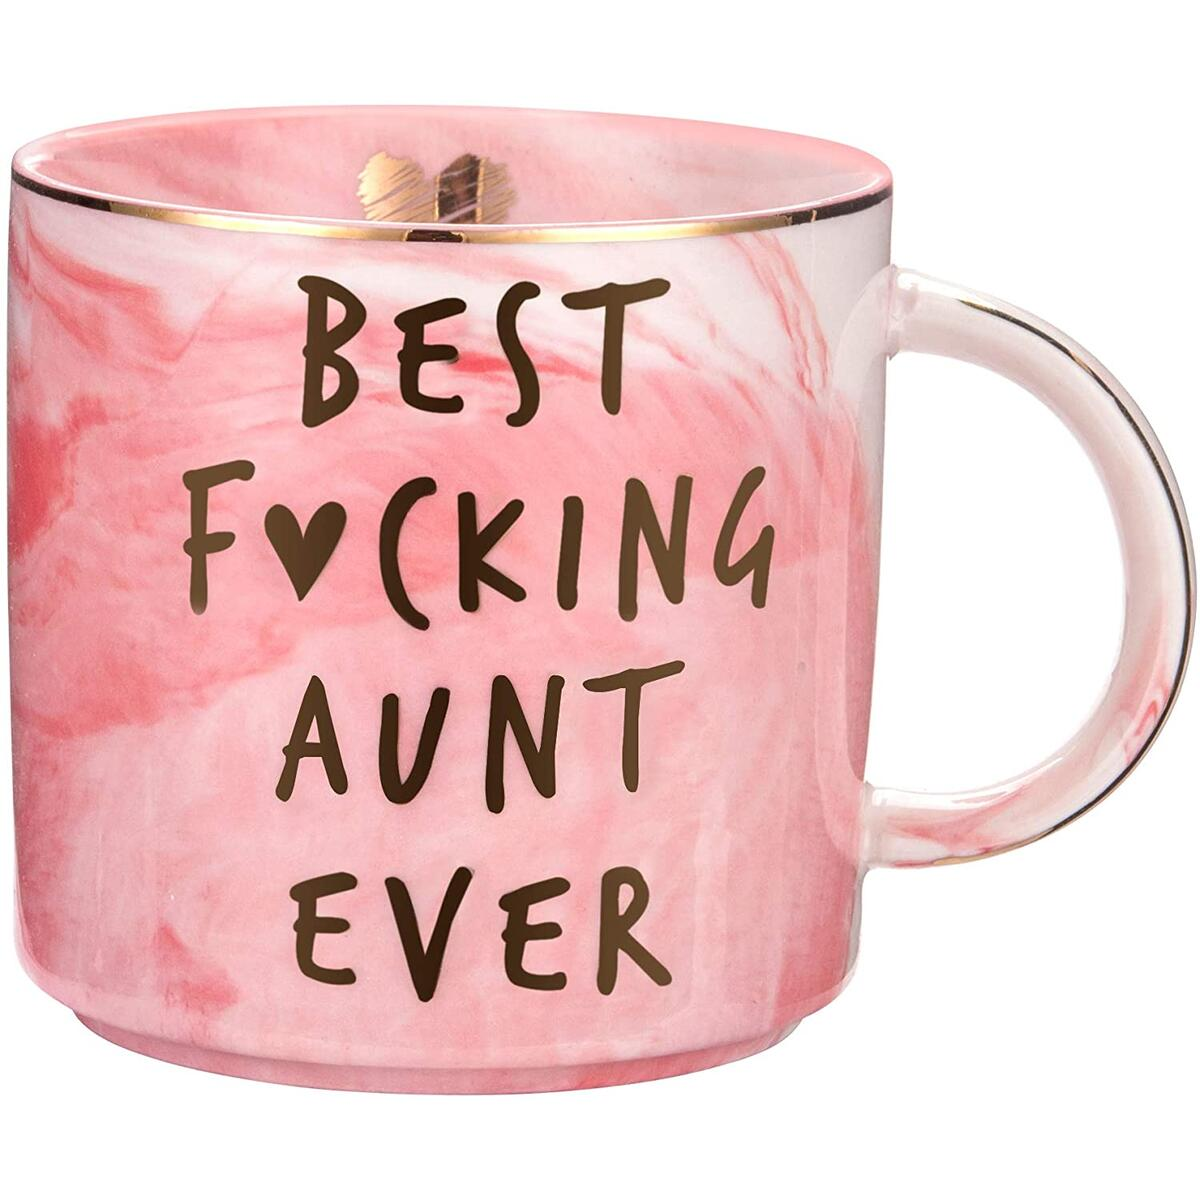 Aunt Gifts from Niece, Nephew - Best Aunt Ever - Funny Gift for Aunts - BAE Best Aunt Ever Gifts for Birthday - Great Auntie Gifts - Cute Favorite Aunt Mug, Ceramic 11.5oz Coffee Cup